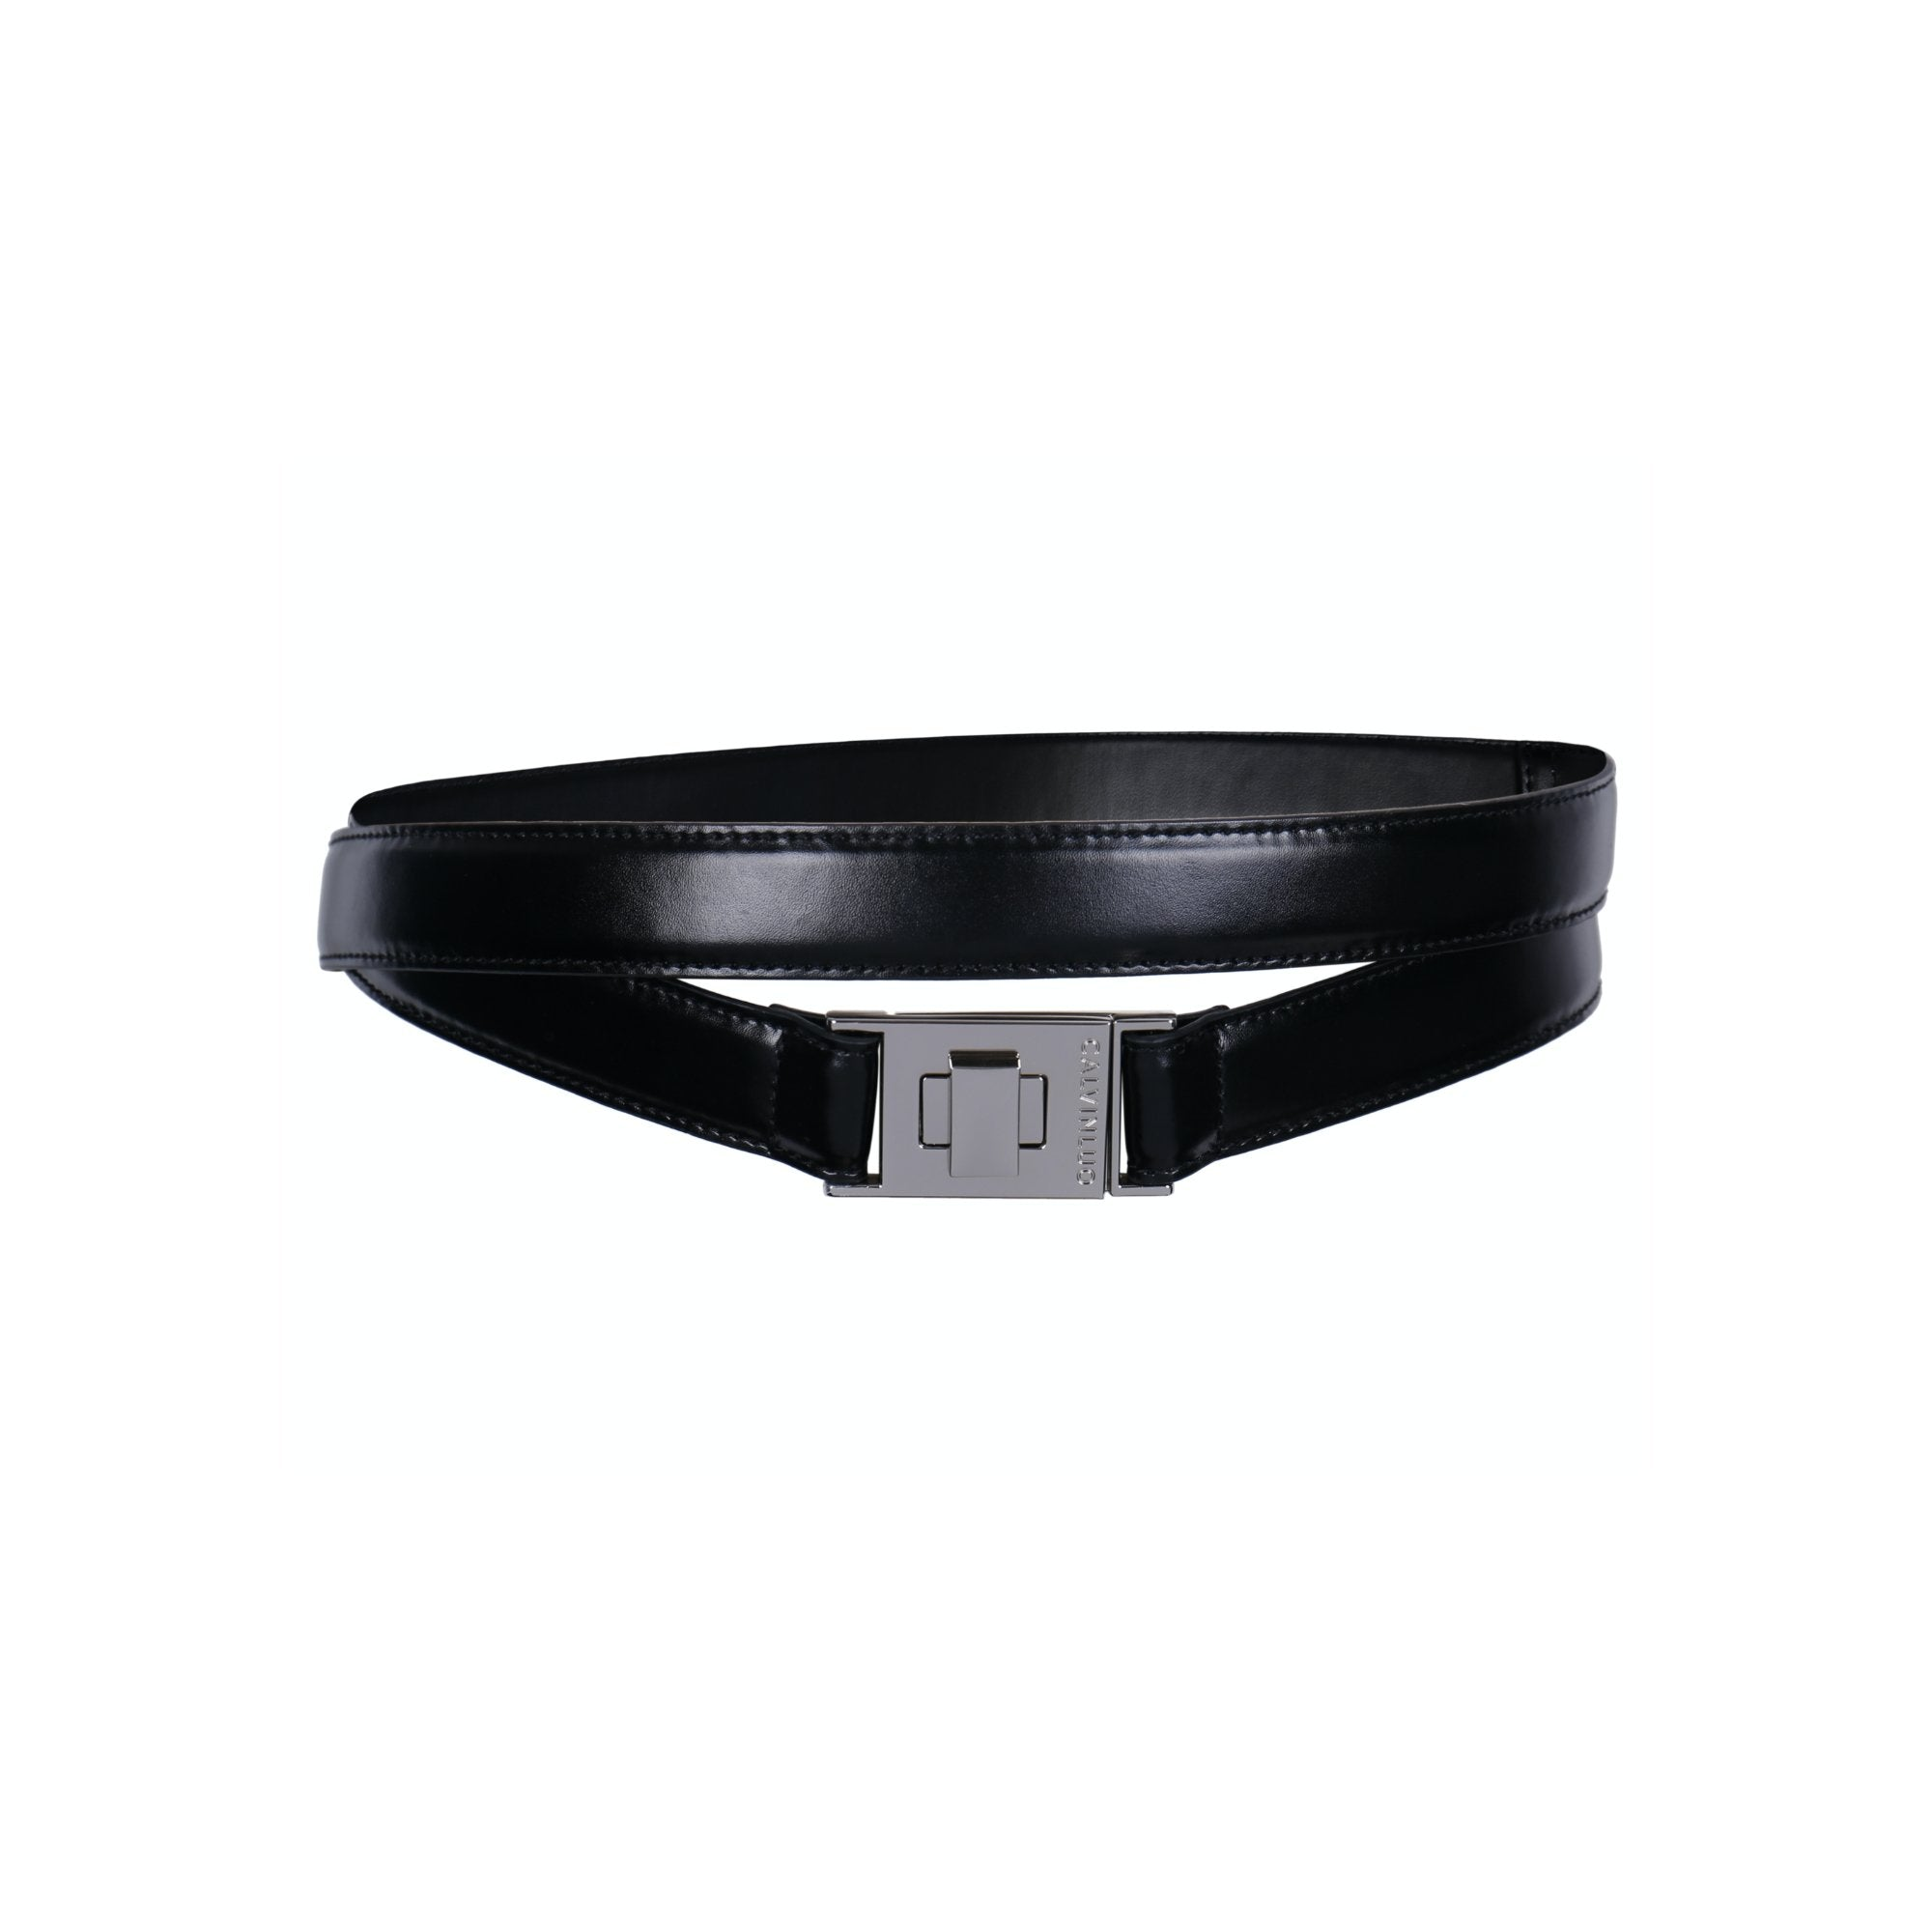 CALVIN LUO Black Double Twist-Lock Wraparound Leather Belt | MADA IN CHINA